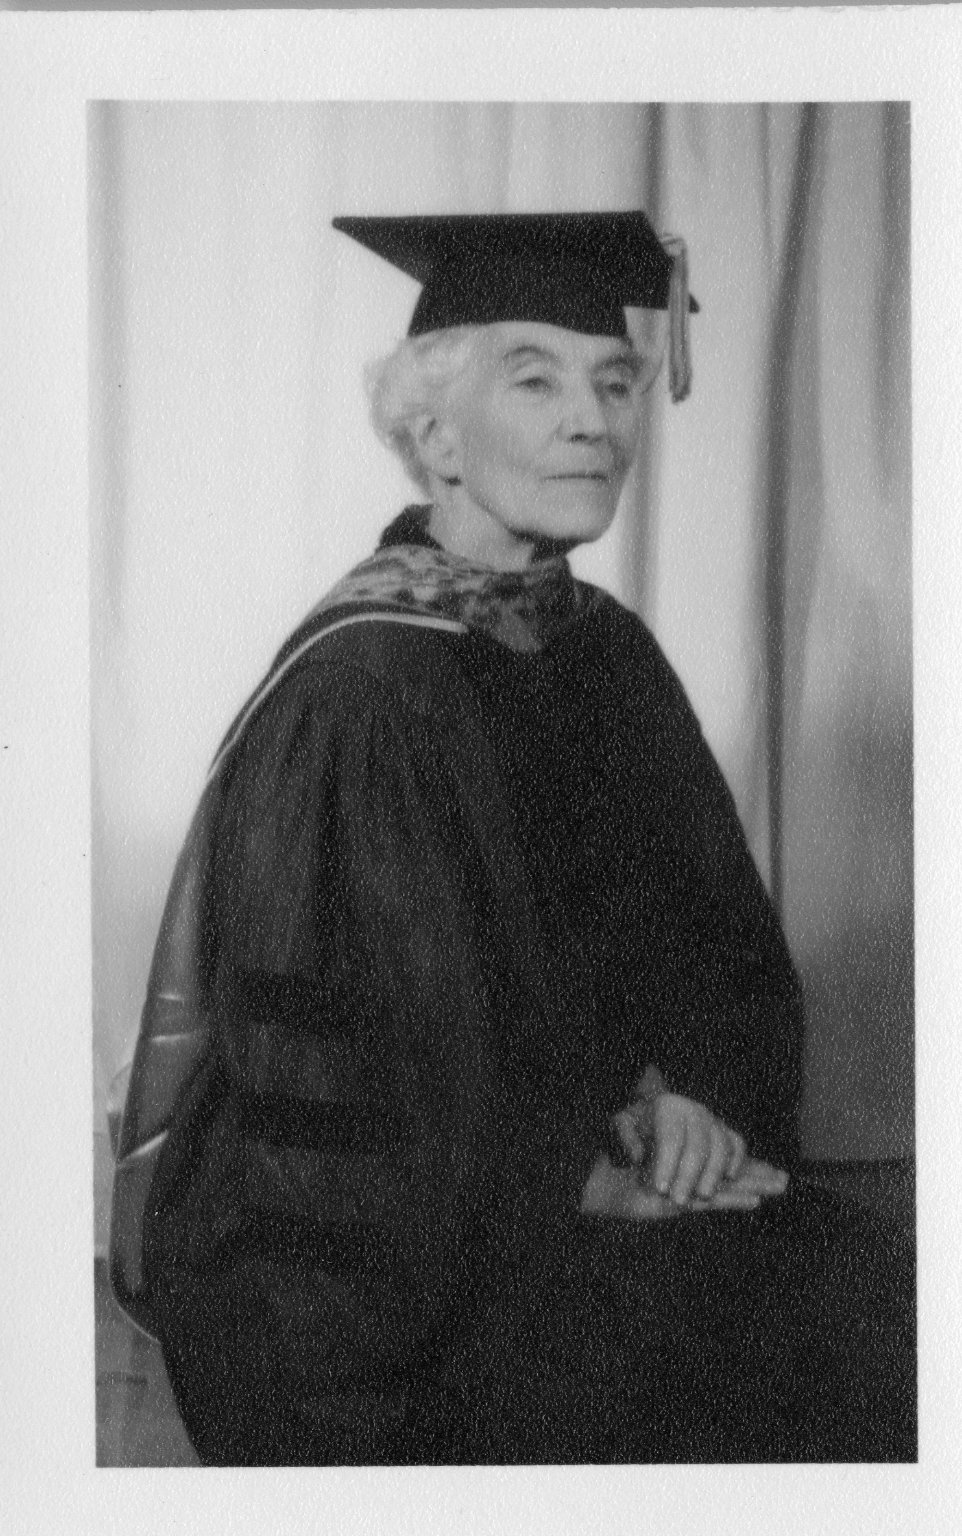 Ruth Underhill in Cap and Gown